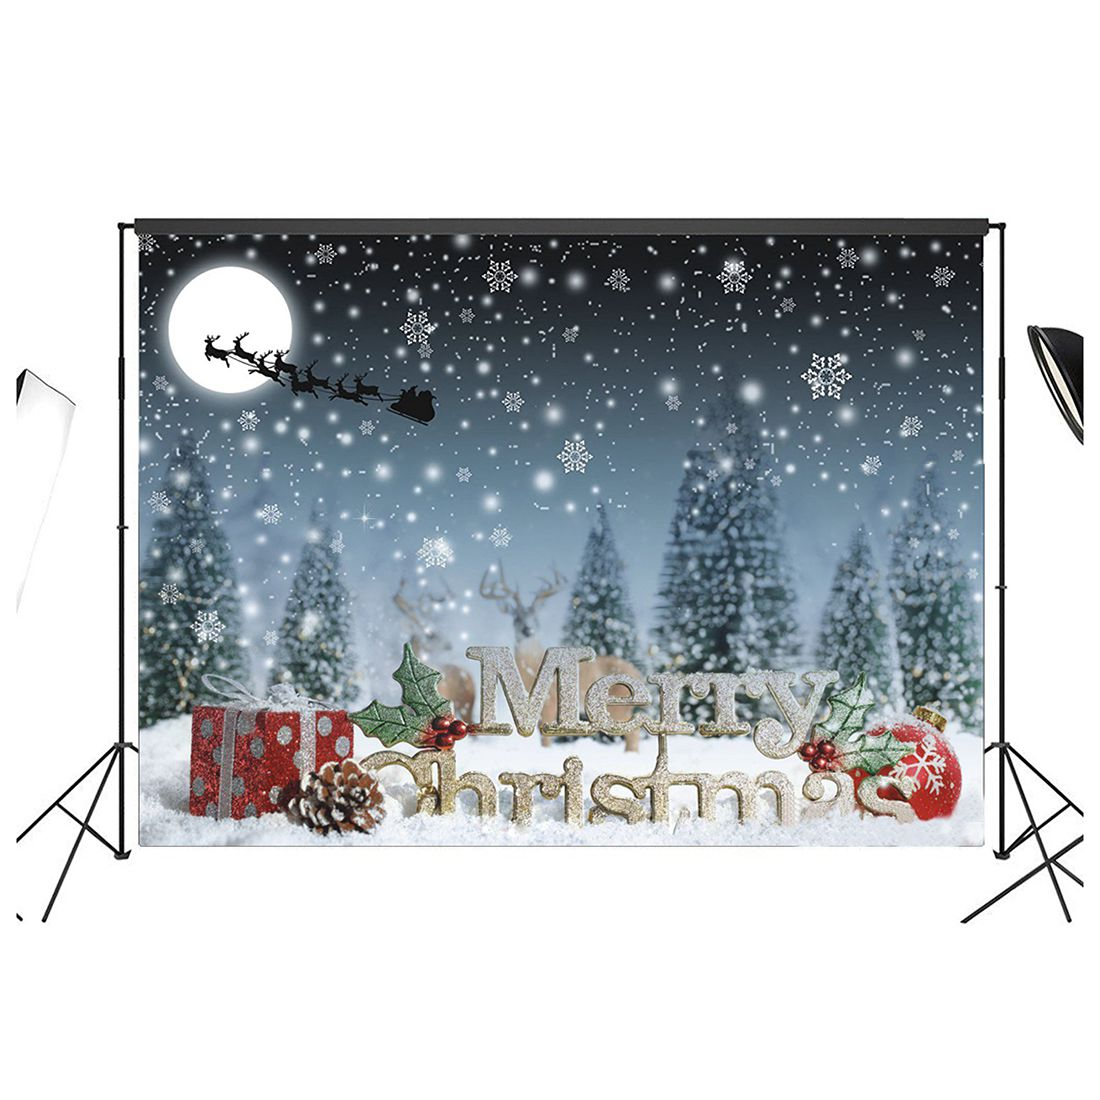 7x 5ft Christmas Photography Backdrop Photo Background Studio Prop 300cm 200cm about 10ft 6 5ft fundo butterflies fluttering woods3d baby photography backdrop background lk 2024